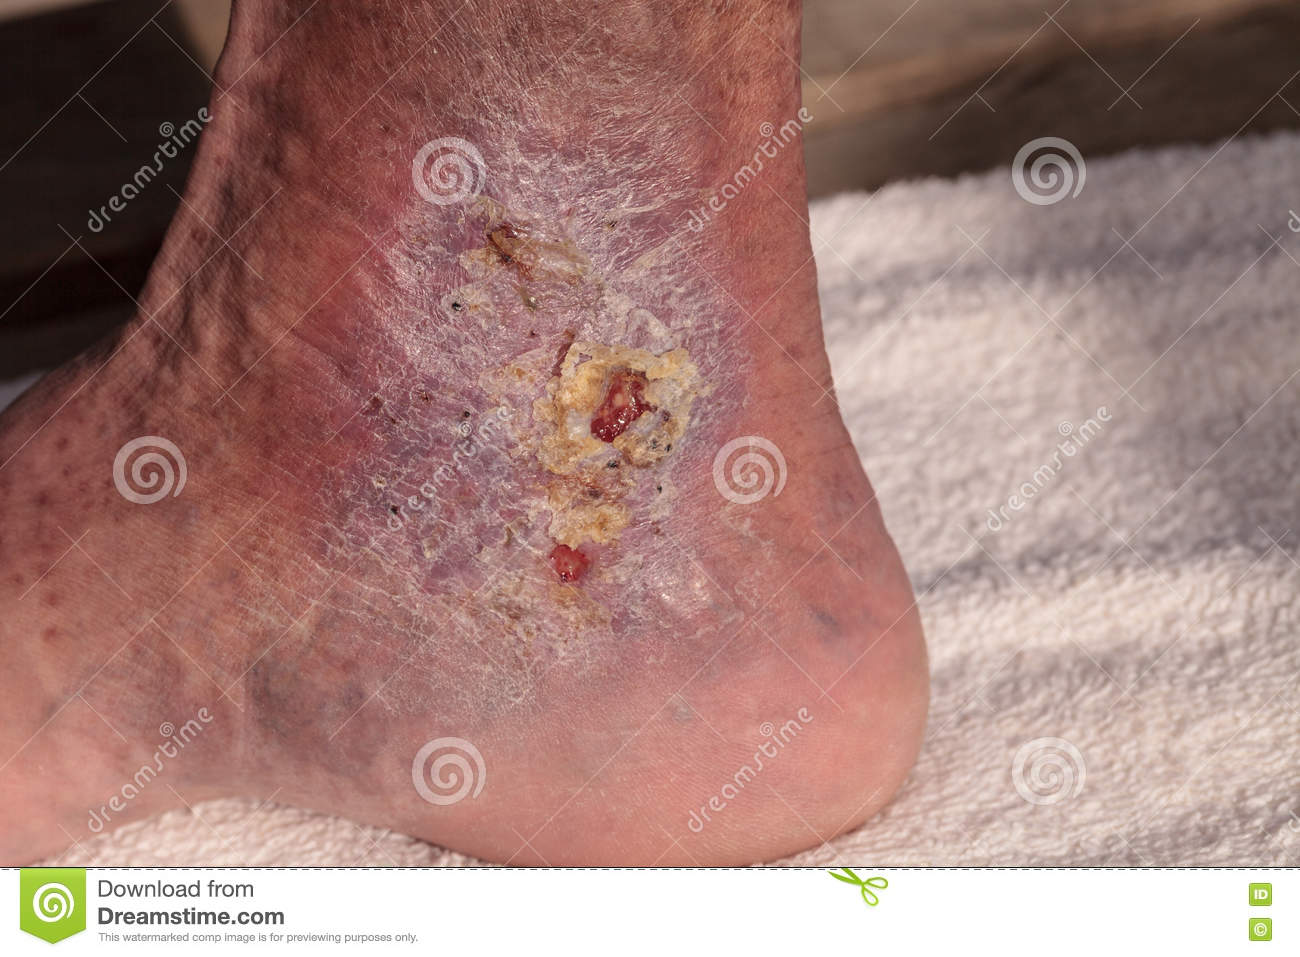 Medical picture: Infection cellulitis